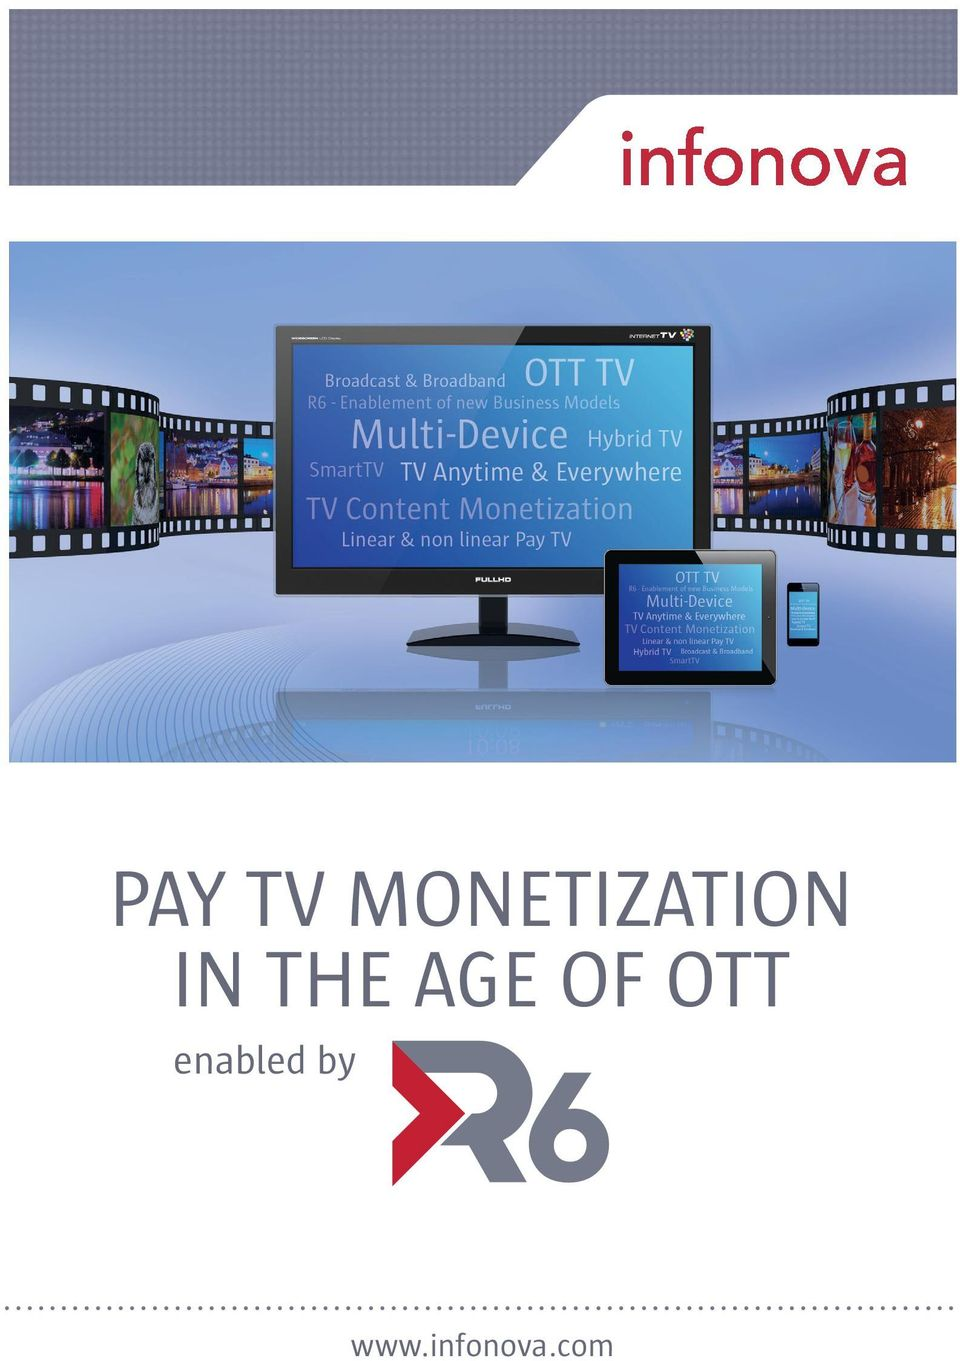 THE AGE OF OTT